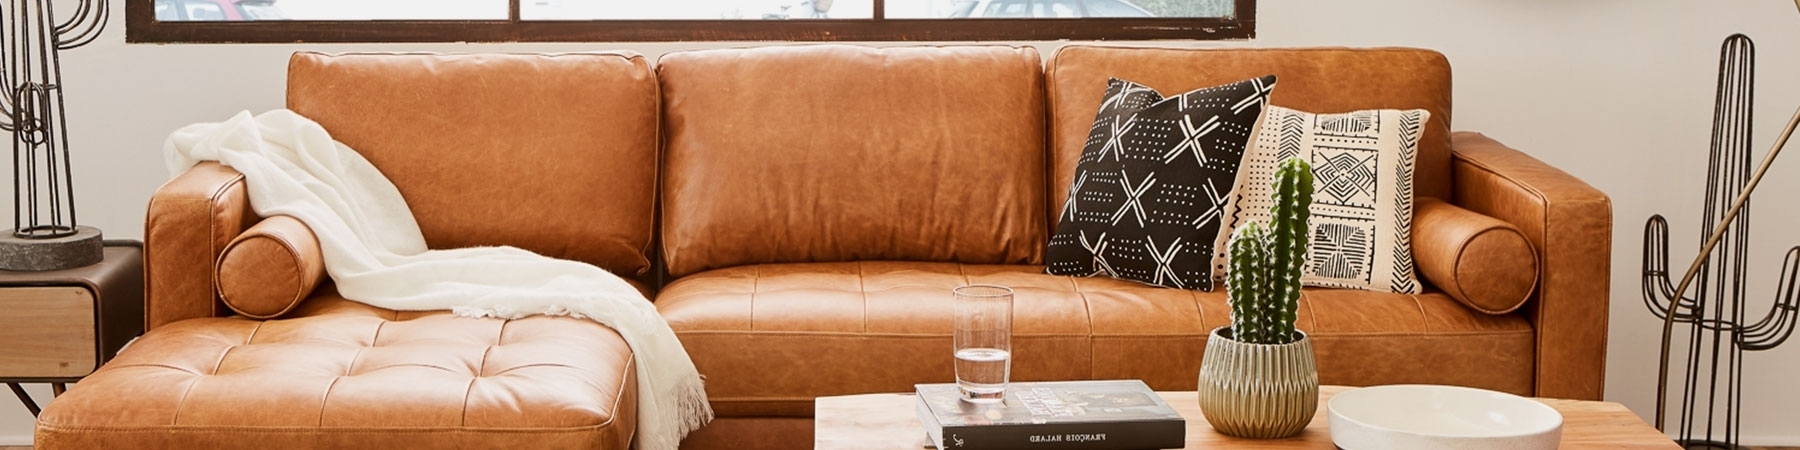 Latest Modern Sectional Sofas – Modular Leather Couches (View 15 of 15)